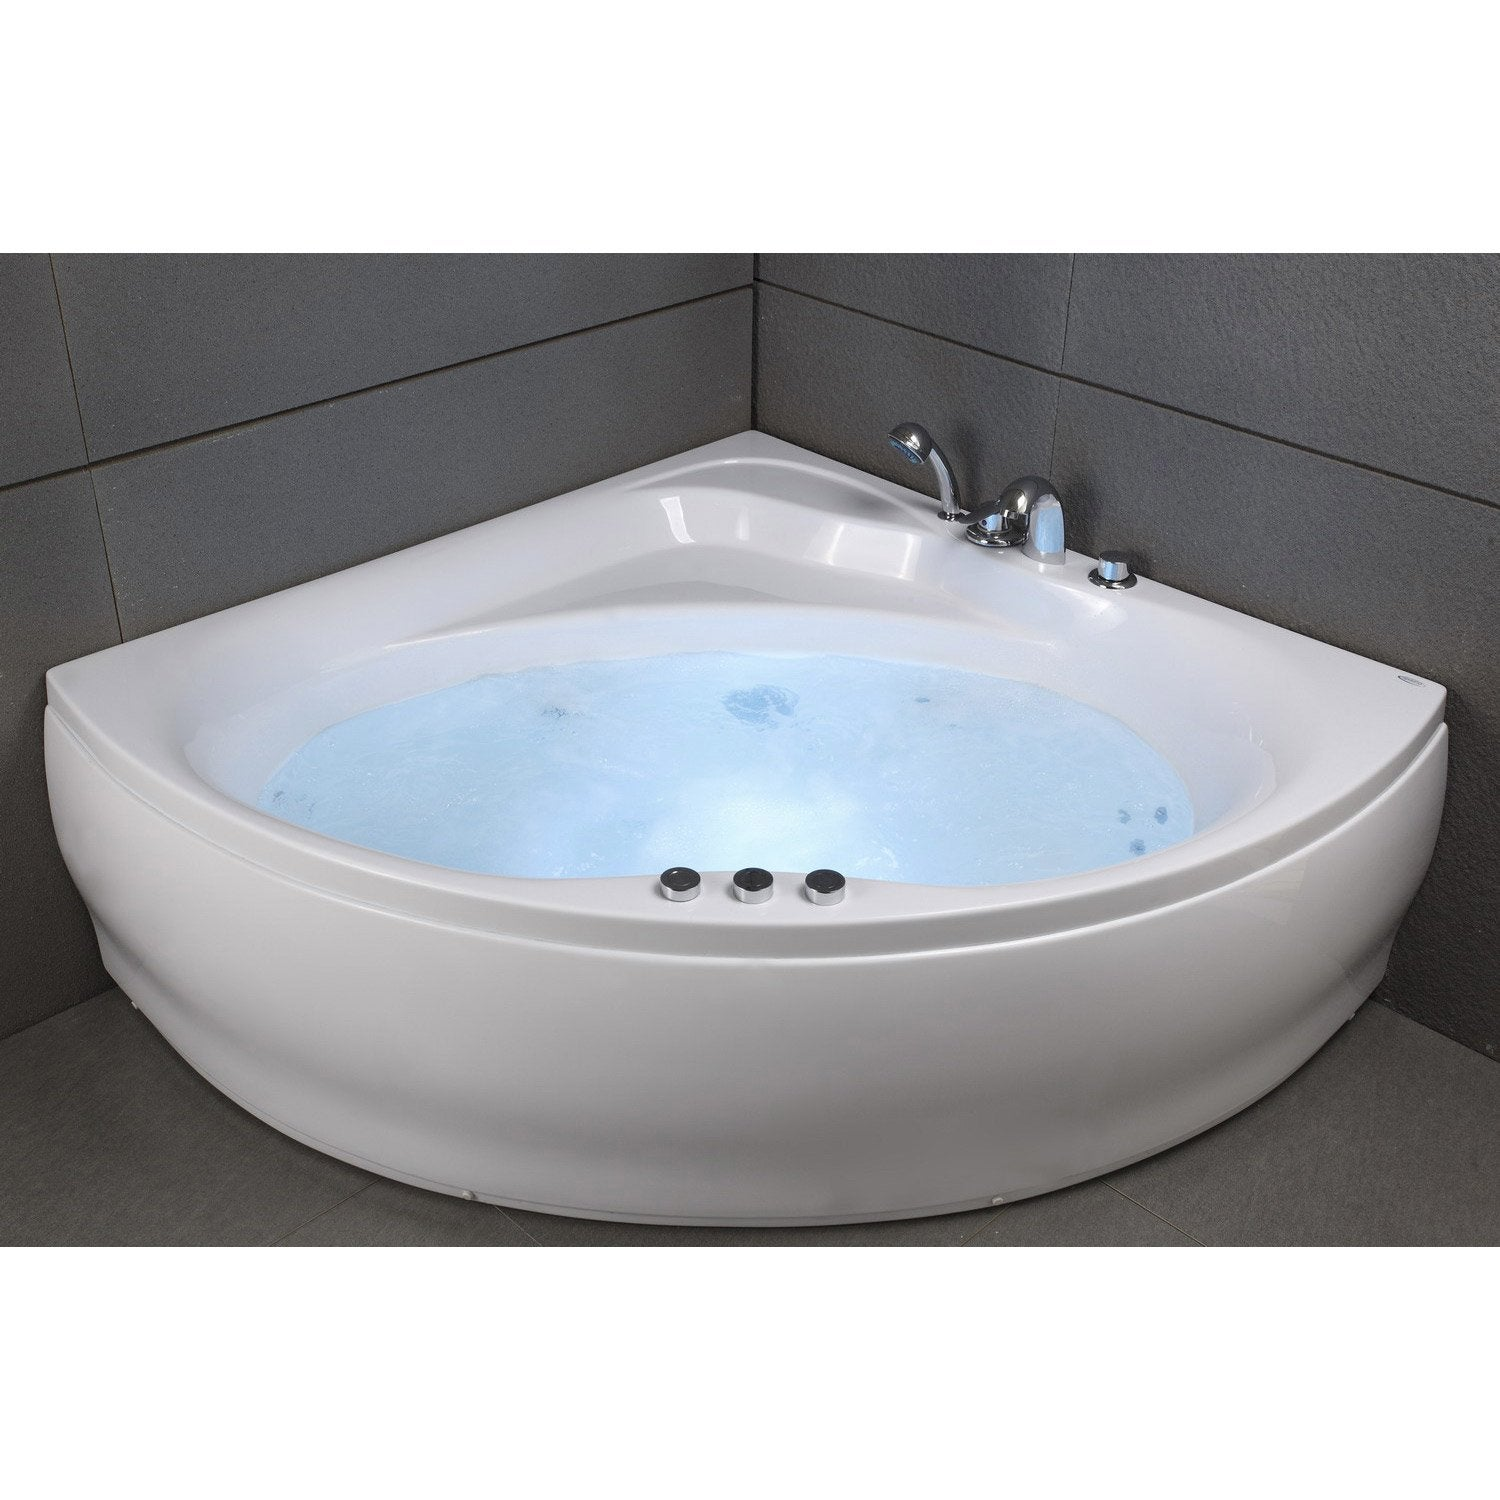 baignoire jacuzzi awesome baignoire balno dmaunaloa jets with baignoire jacuzzi fabulous spa. Black Bedroom Furniture Sets. Home Design Ideas